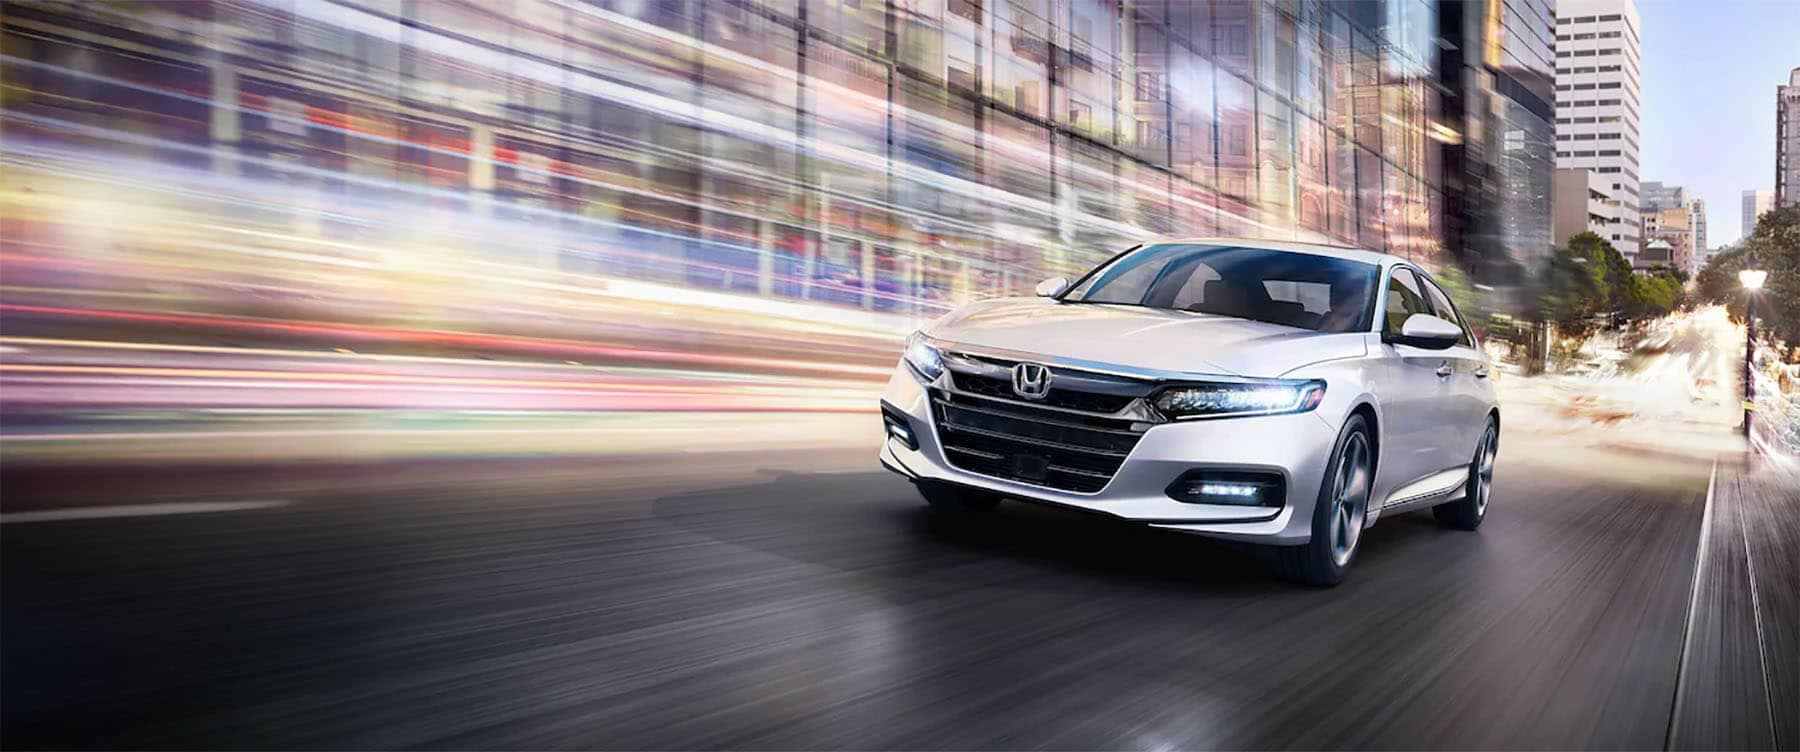 2019 Honda Accord Driving Through the City